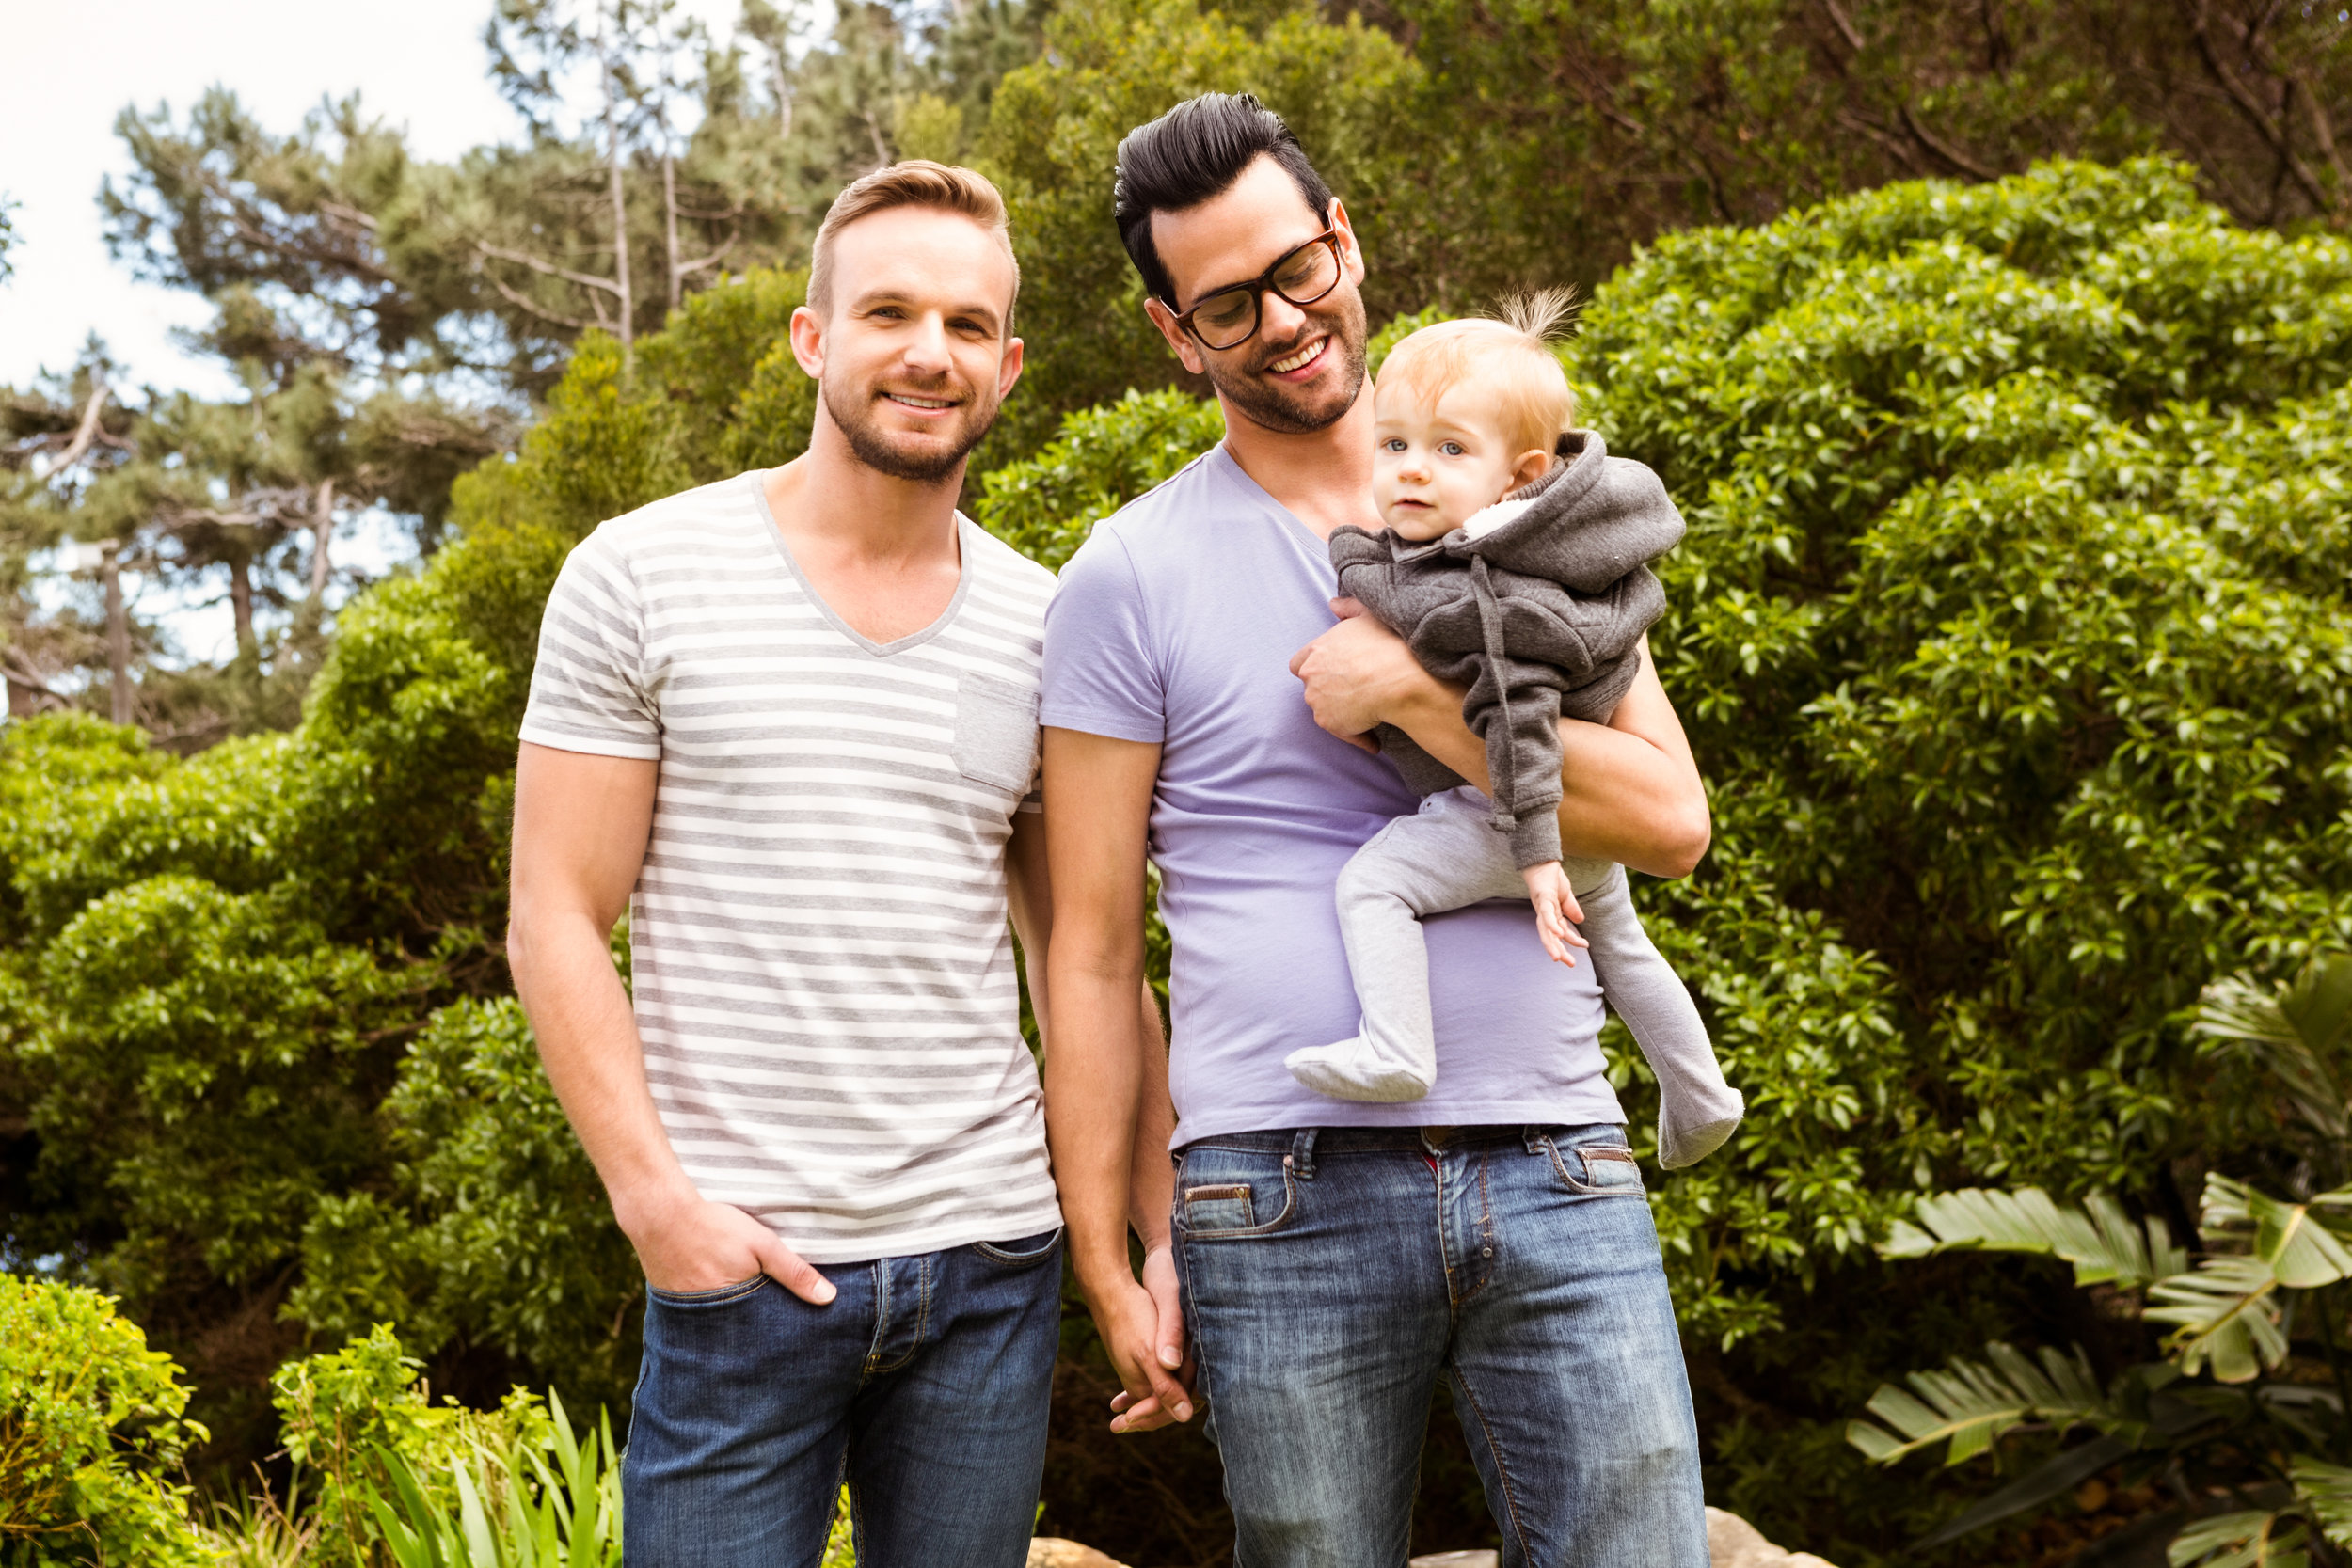 Same sex couple_male with baby.jpg